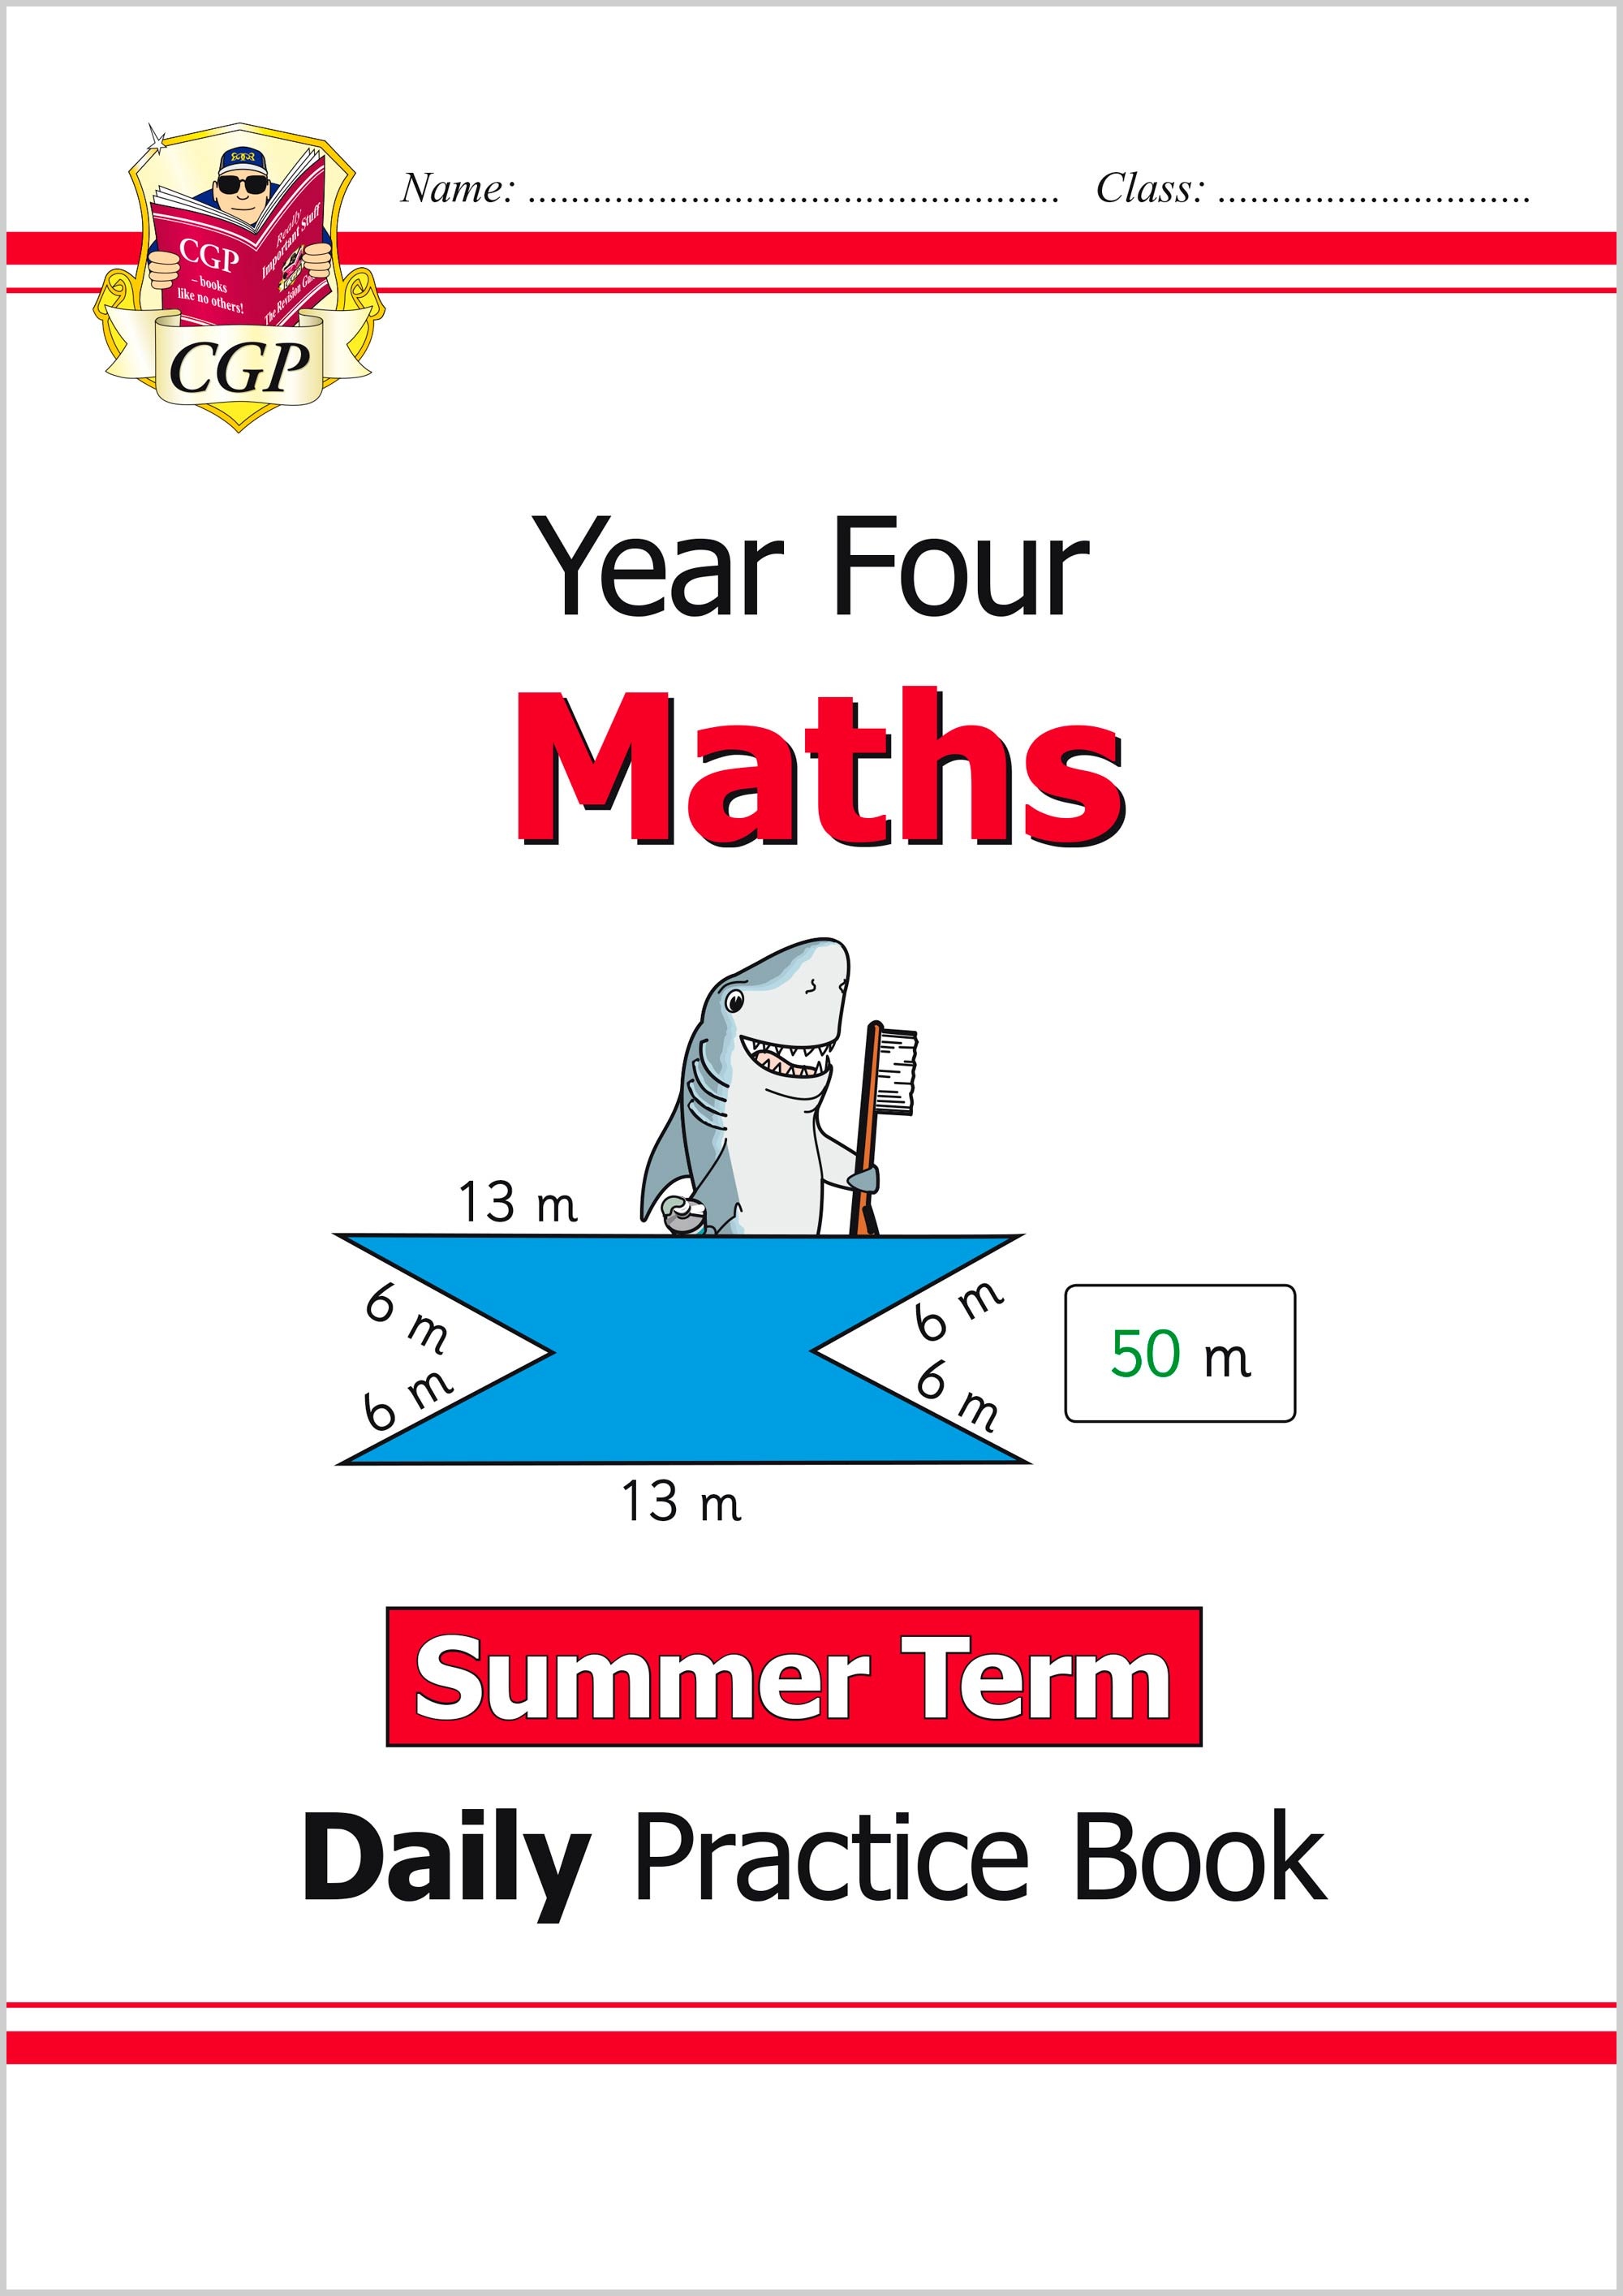 M4WSU21 - New KS2 Maths Daily Practice Book: Year 4 - Summer Term